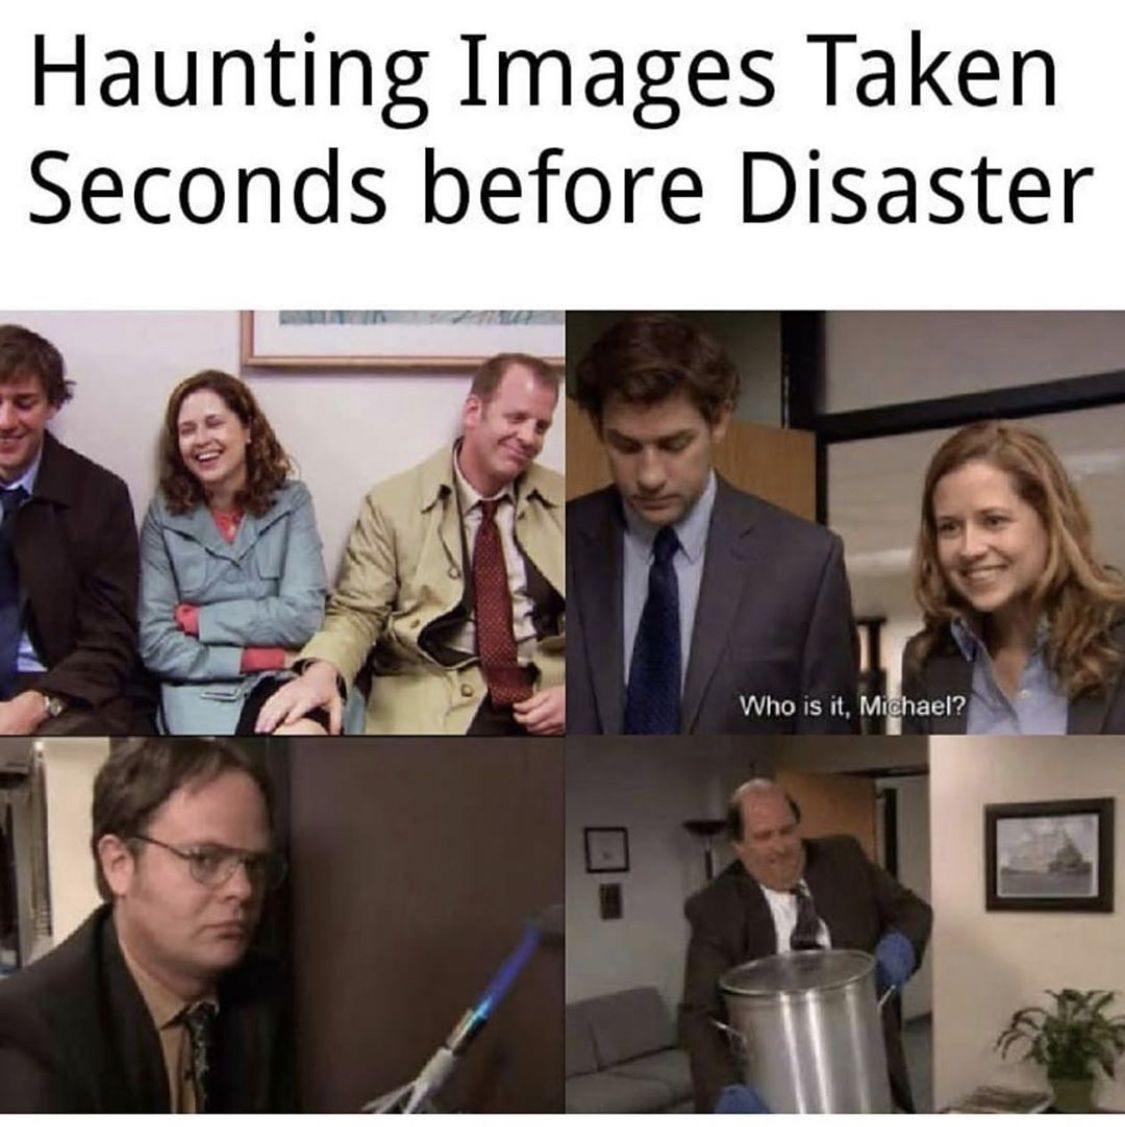 Pin By Kira On The Office In 2020 Office Memes Office Jokes The Office Show